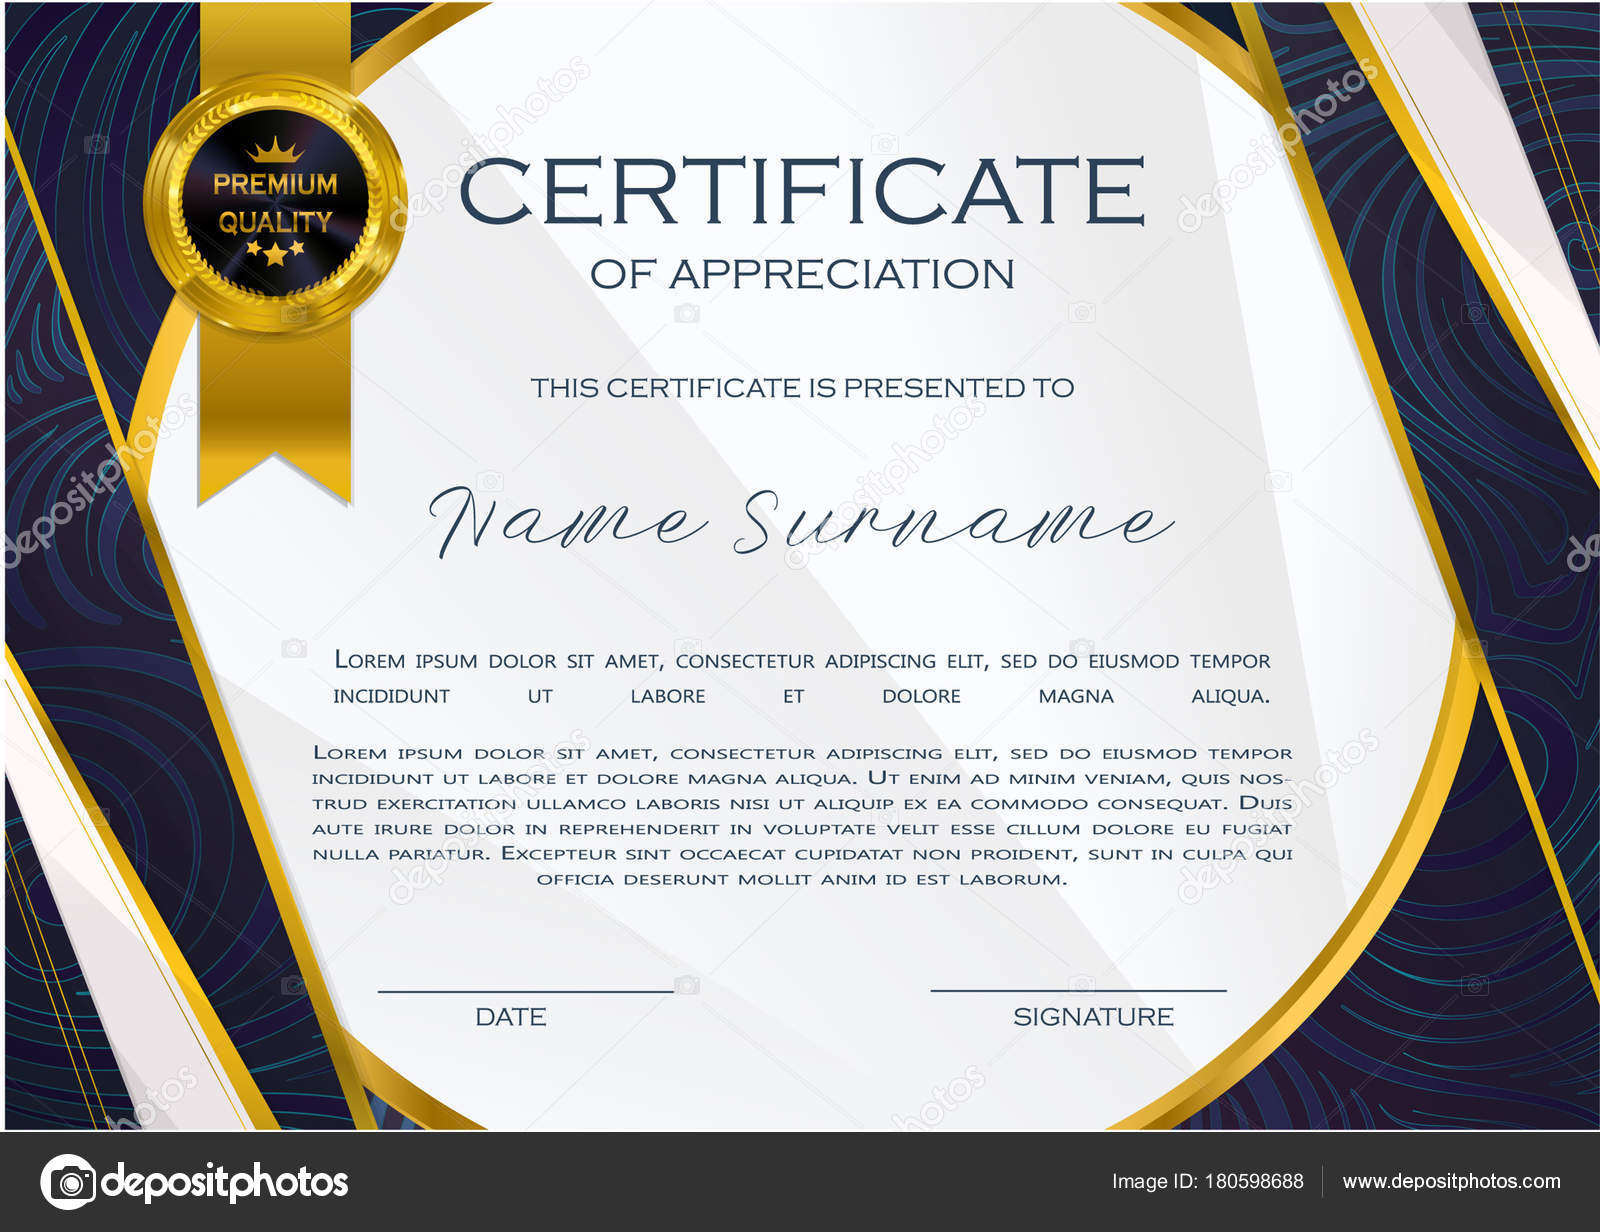 Qualification Certificate Appreciation Design Elegant